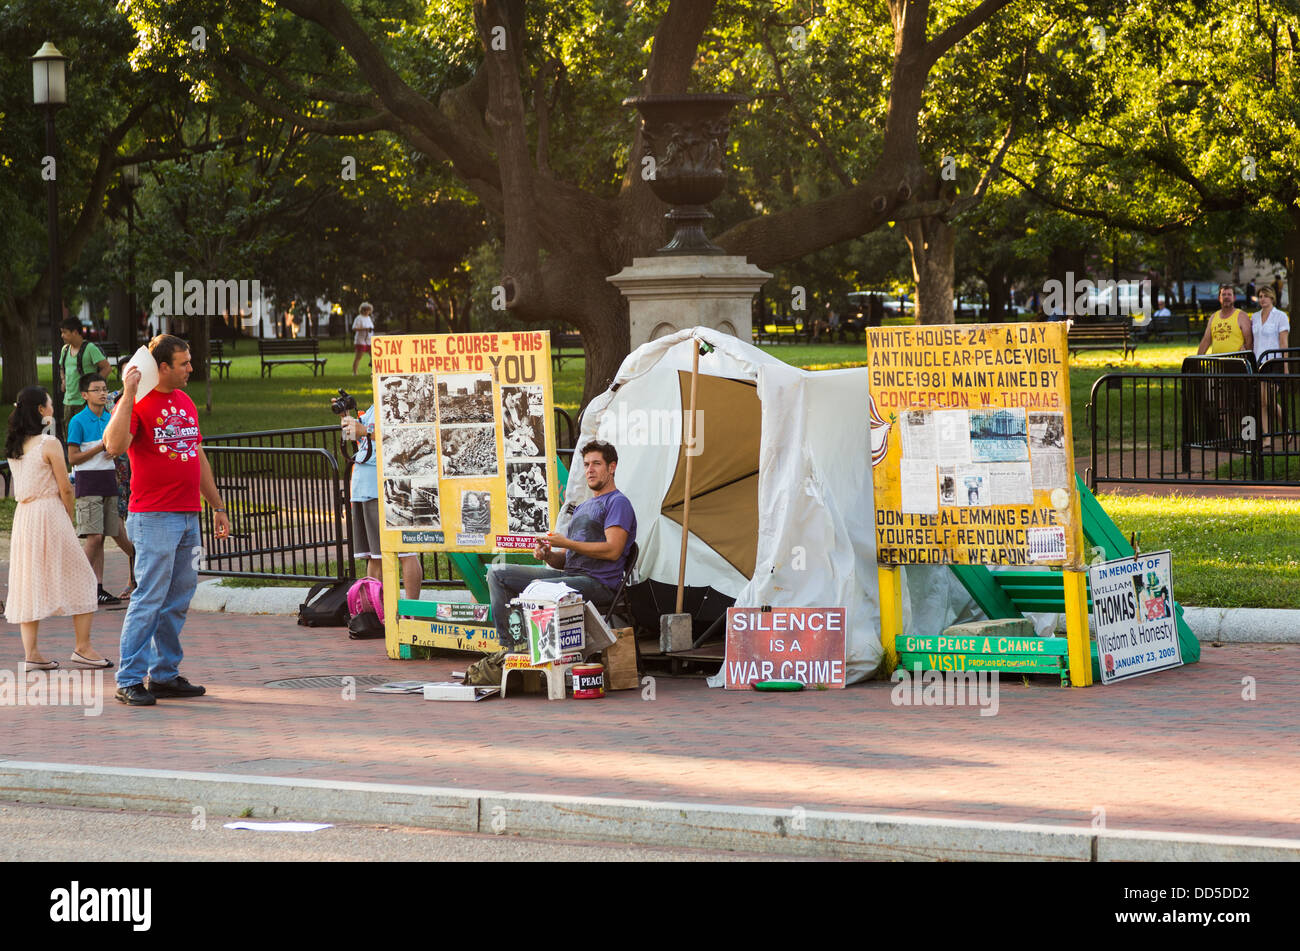 The White House Peace Vigil is an anti-nuclear weapons protest vigil outside the White House, Washington DC - Stock Image